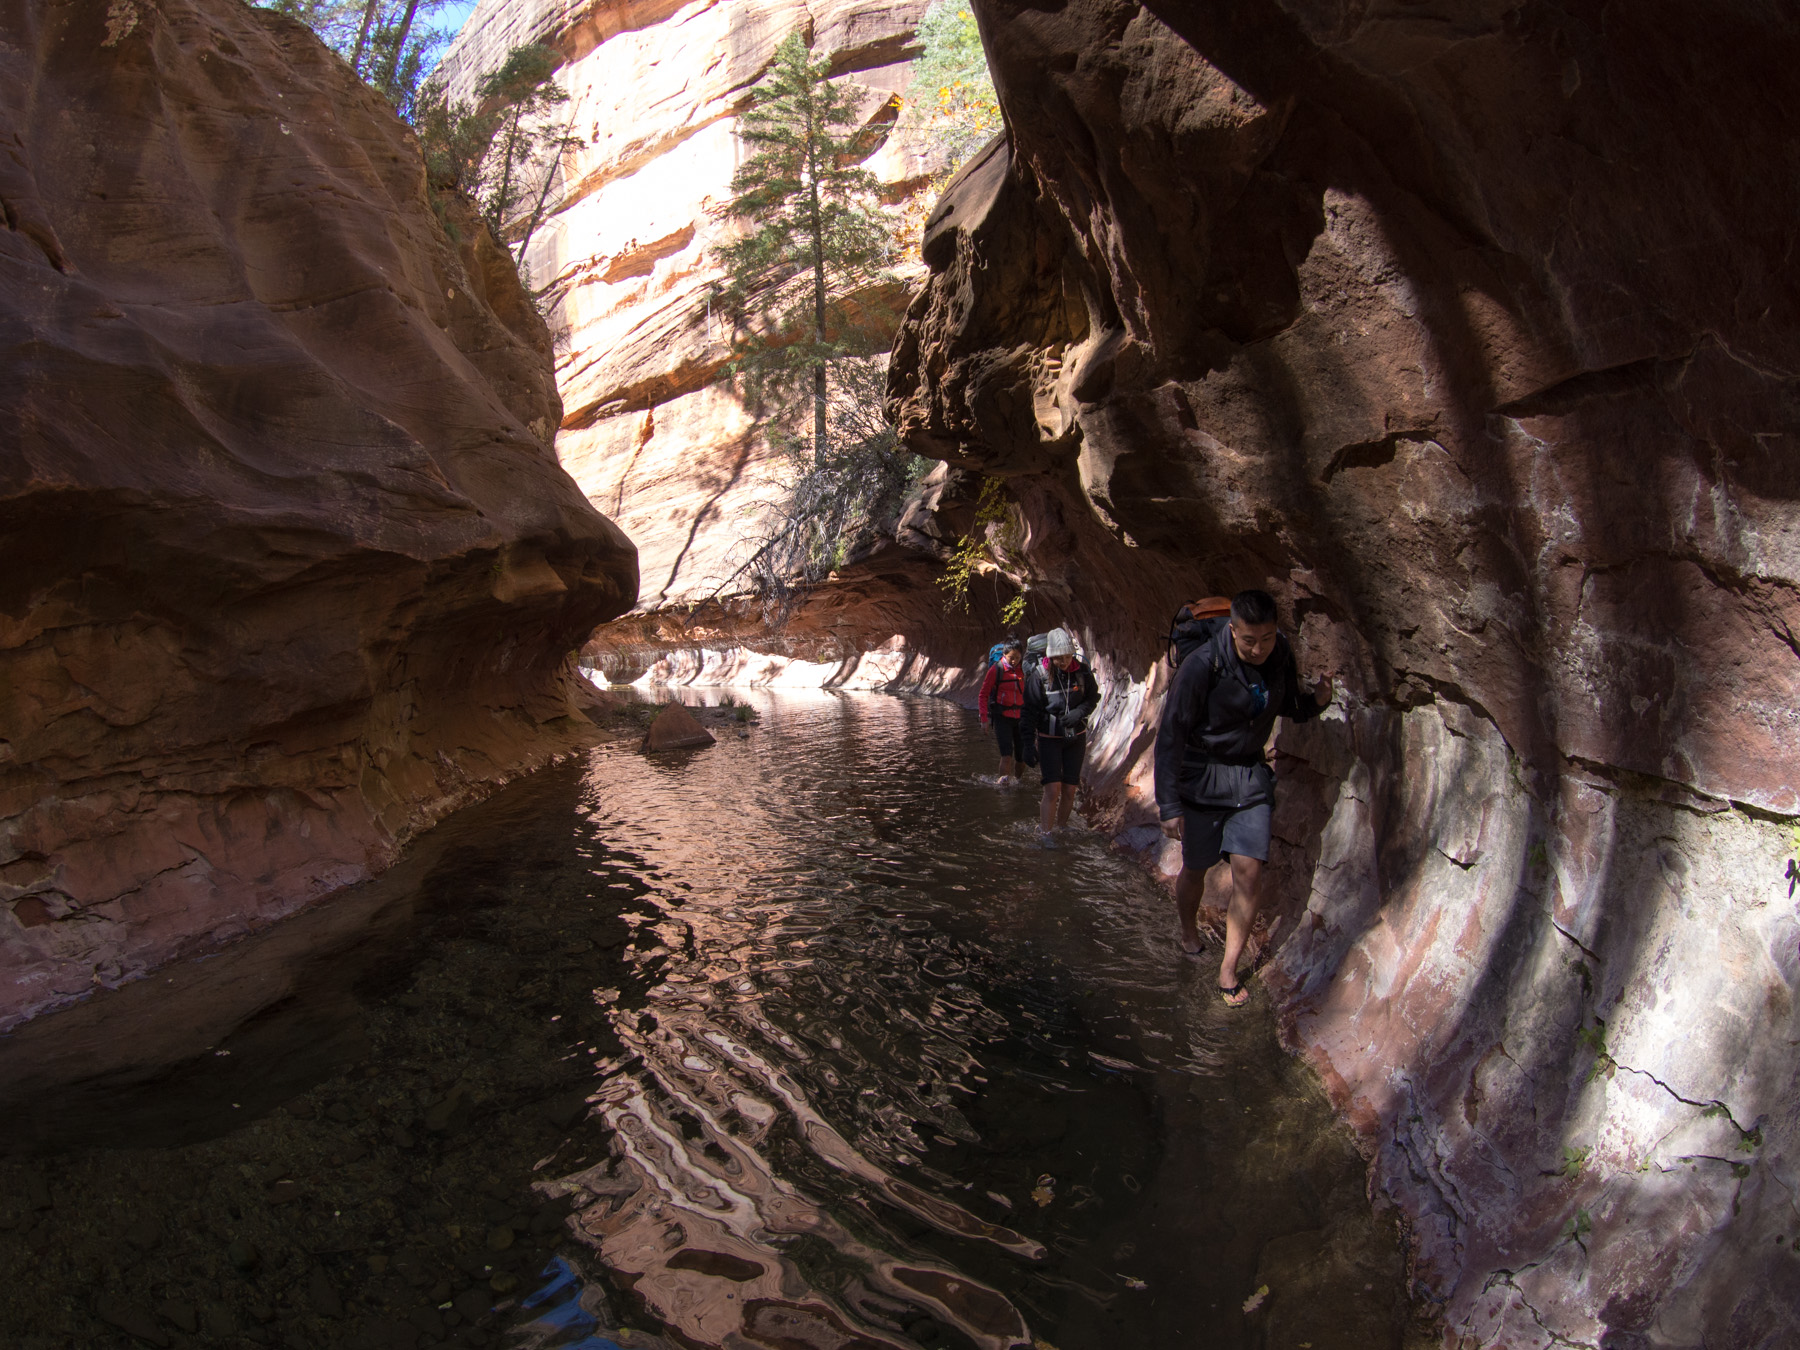 Leaving all of the other hikers behind as we waded up the frigid water